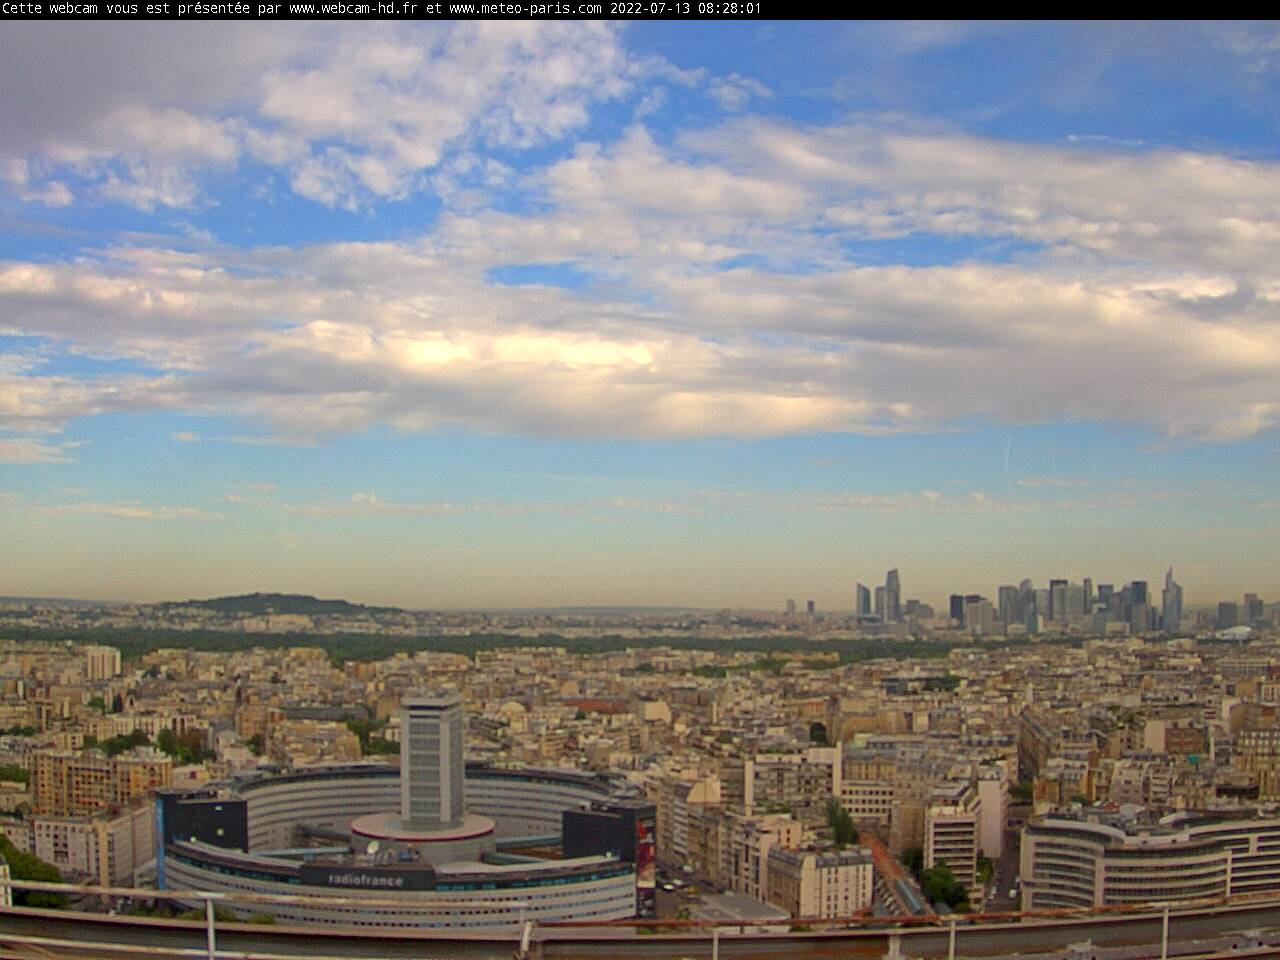 notre webcam de Paris Maison de la Radio - La Défense